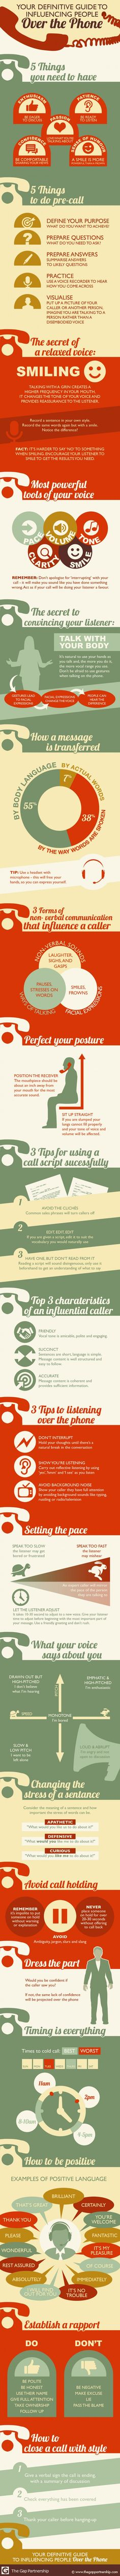 Your Definitive Guide To Influencing People Over the Phone #infographic #Marketing #Phone